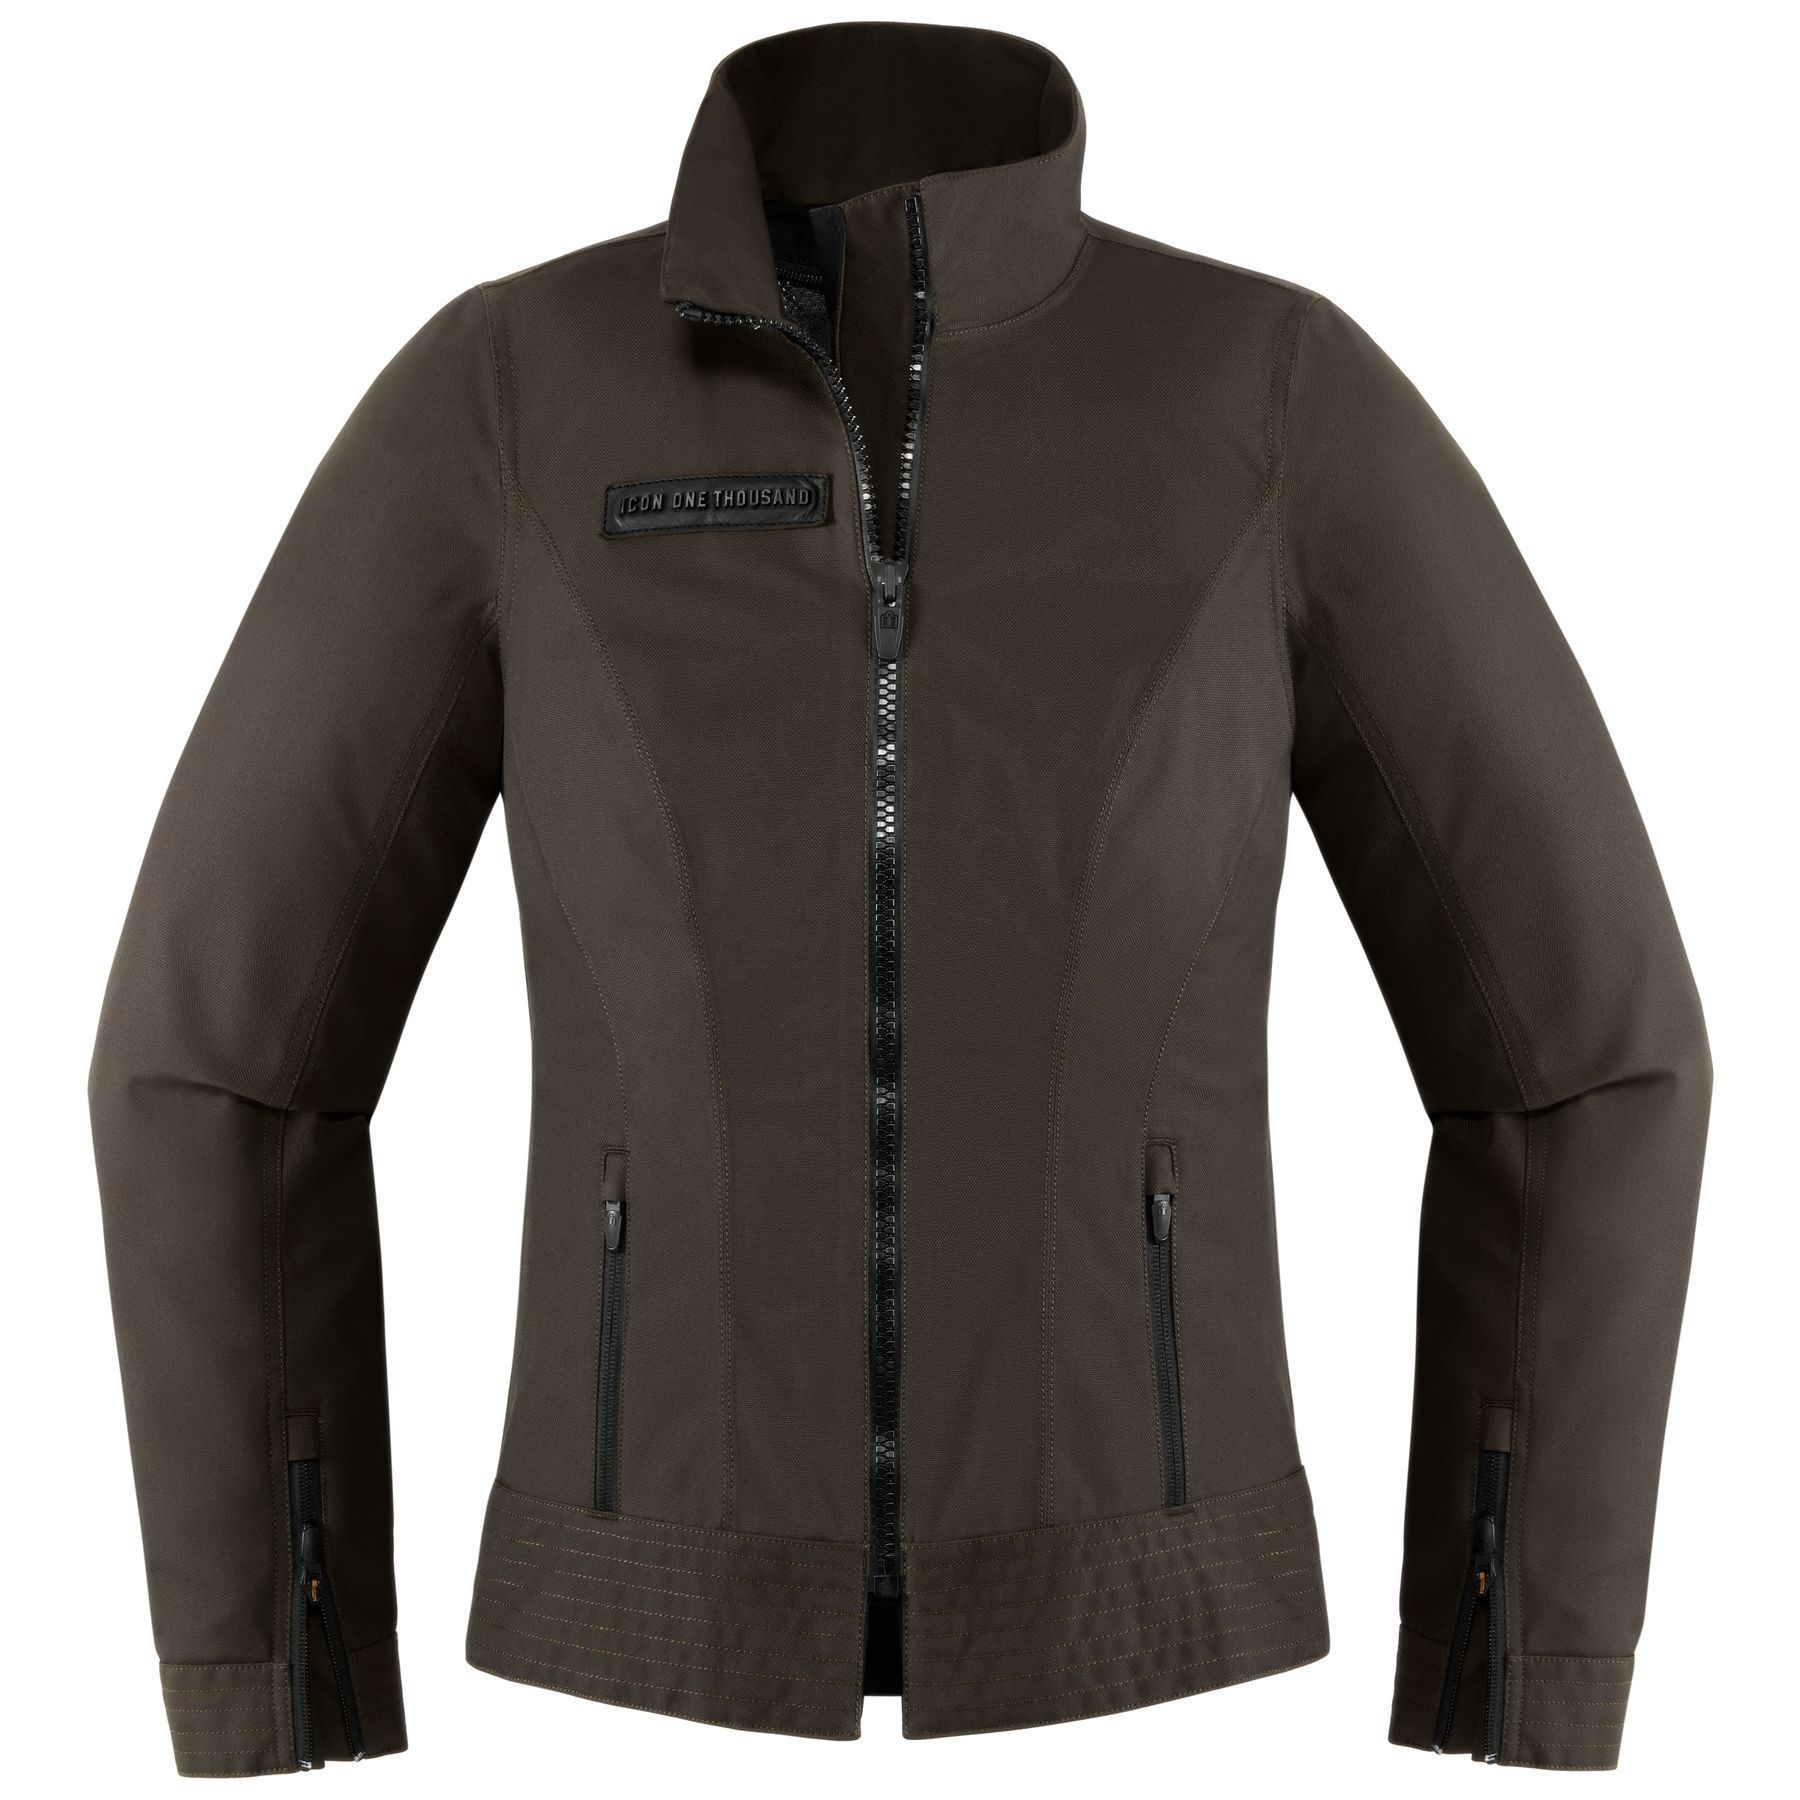 Icon 1000 Fairlady Women's Jacket - RevZilla -  Fashions intersects with diehard rider. The Icon Fairlady emerges. Waterproof YKK zippers coupled w - #BicycleDesign #CyclingArt #CyclingGear #ExtremeSports #fairlady #Icon #jacket #revzilla #RideABike #Snowboarding #women #Womens